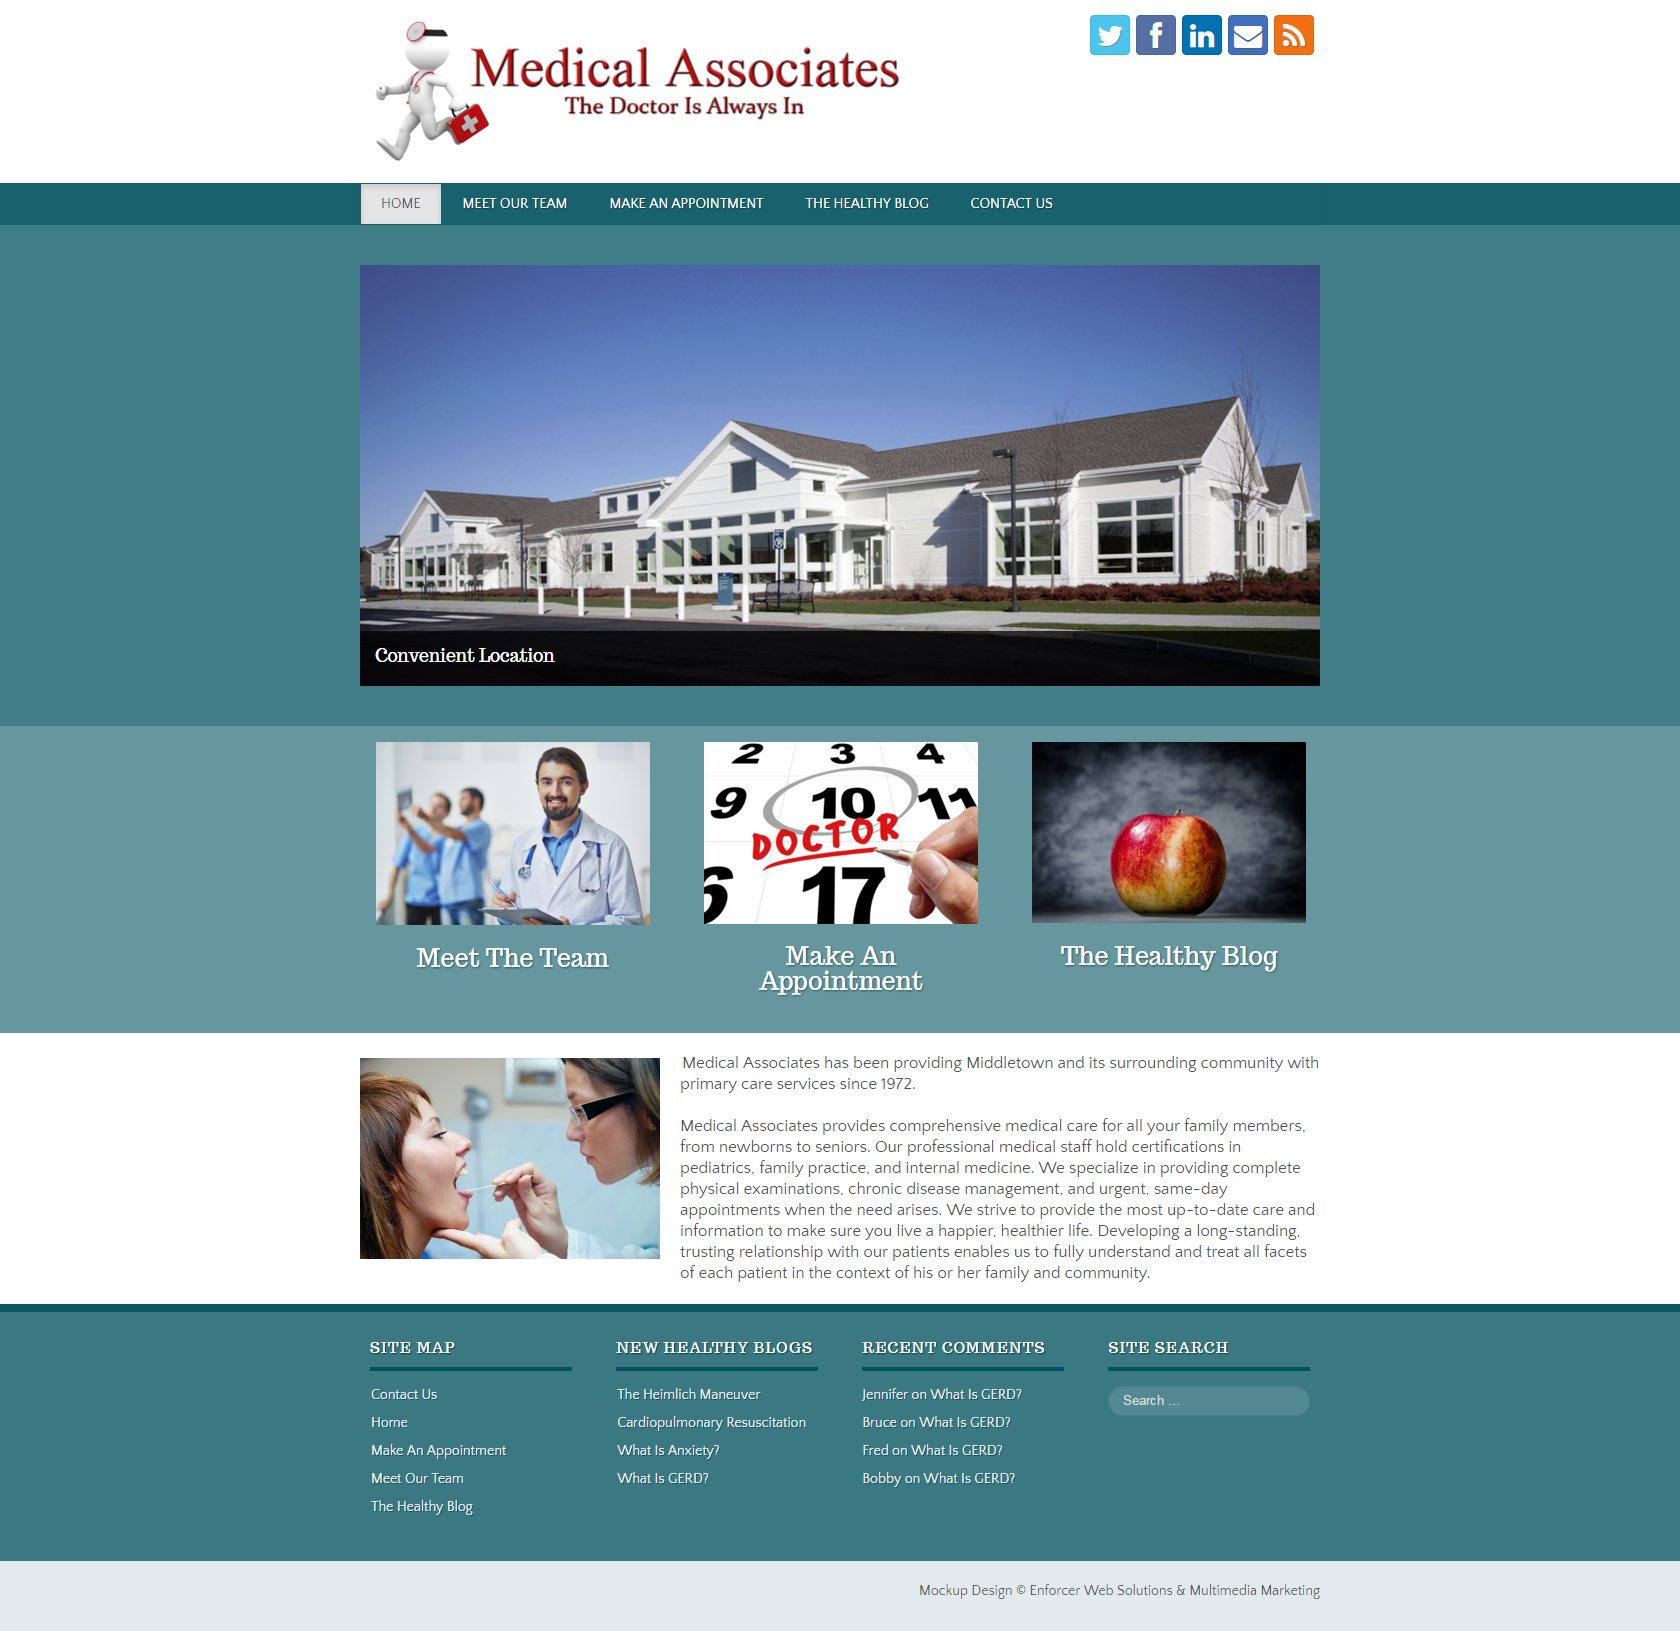 Medical Associates: Desktop View